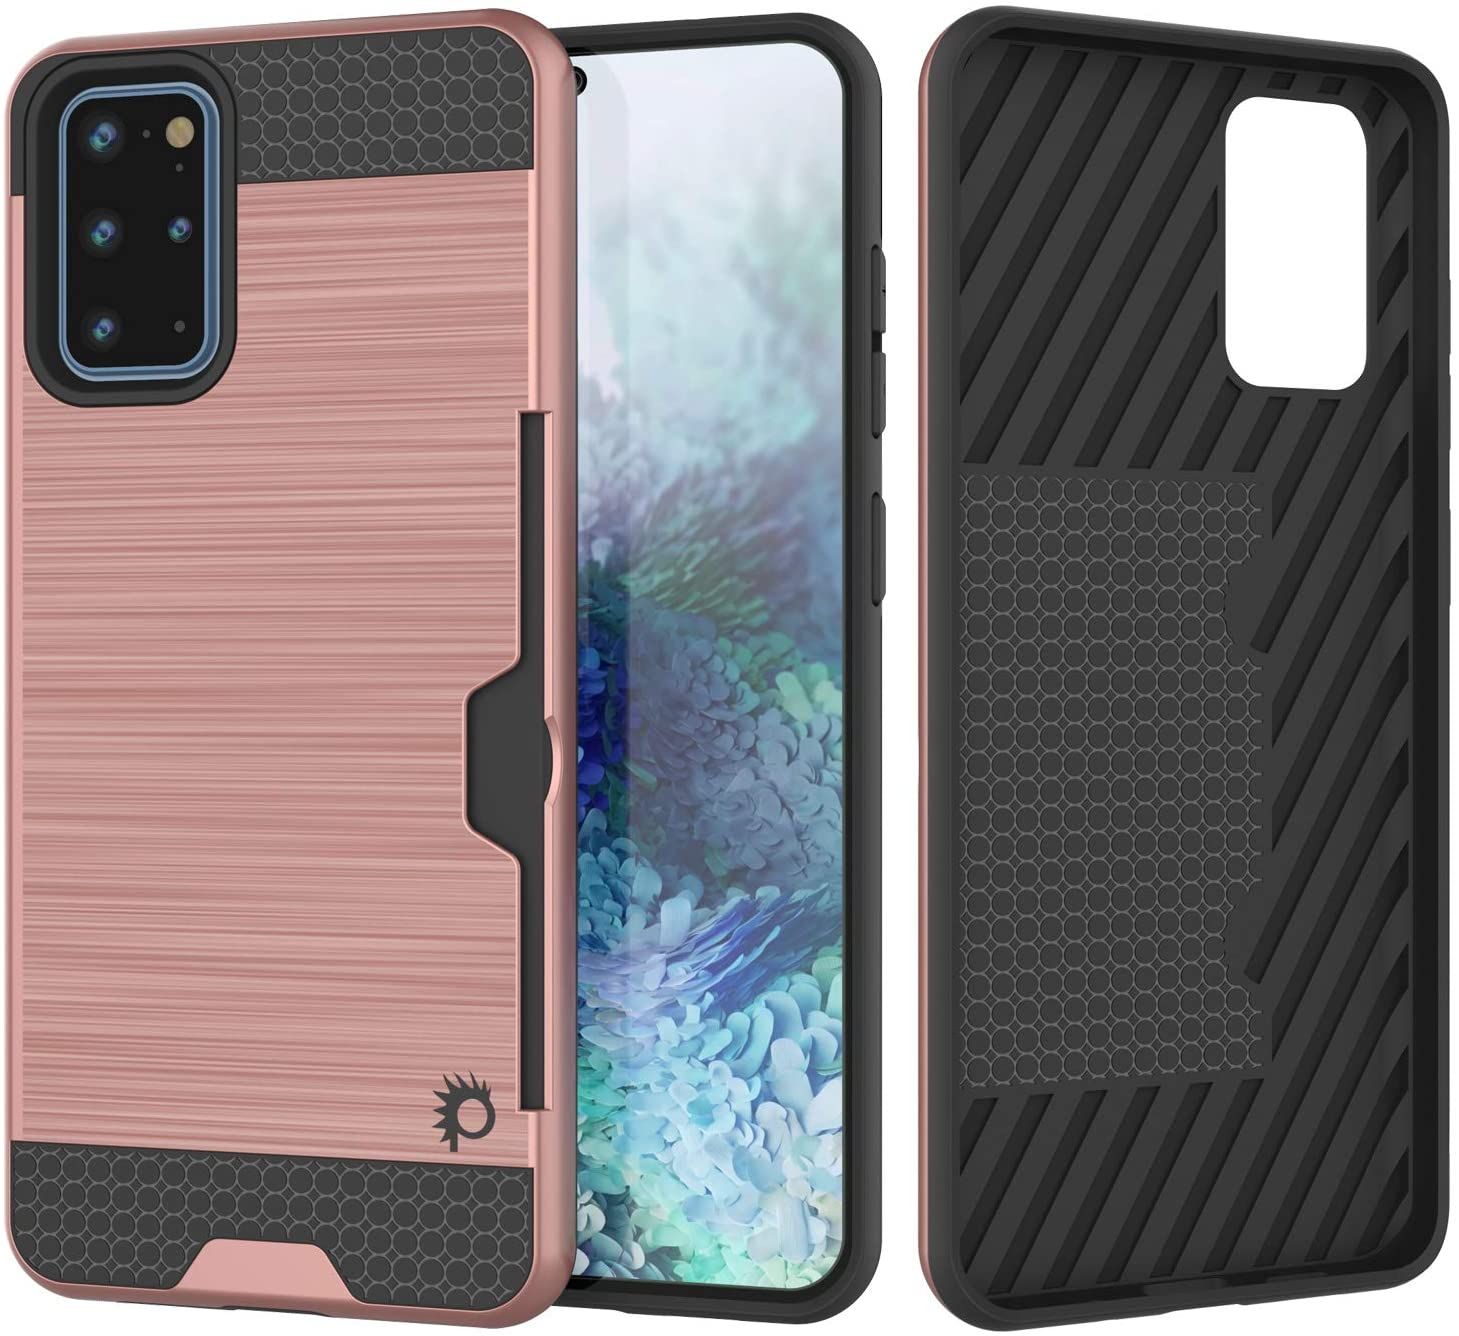 Galaxy S20+ Plus  Case, PUNKcase [SLOT Series] [Slim Fit] Dual-Layer Armor Cover w/Integrated Anti-Shock System, Credit Card Slot [Rose Gold]